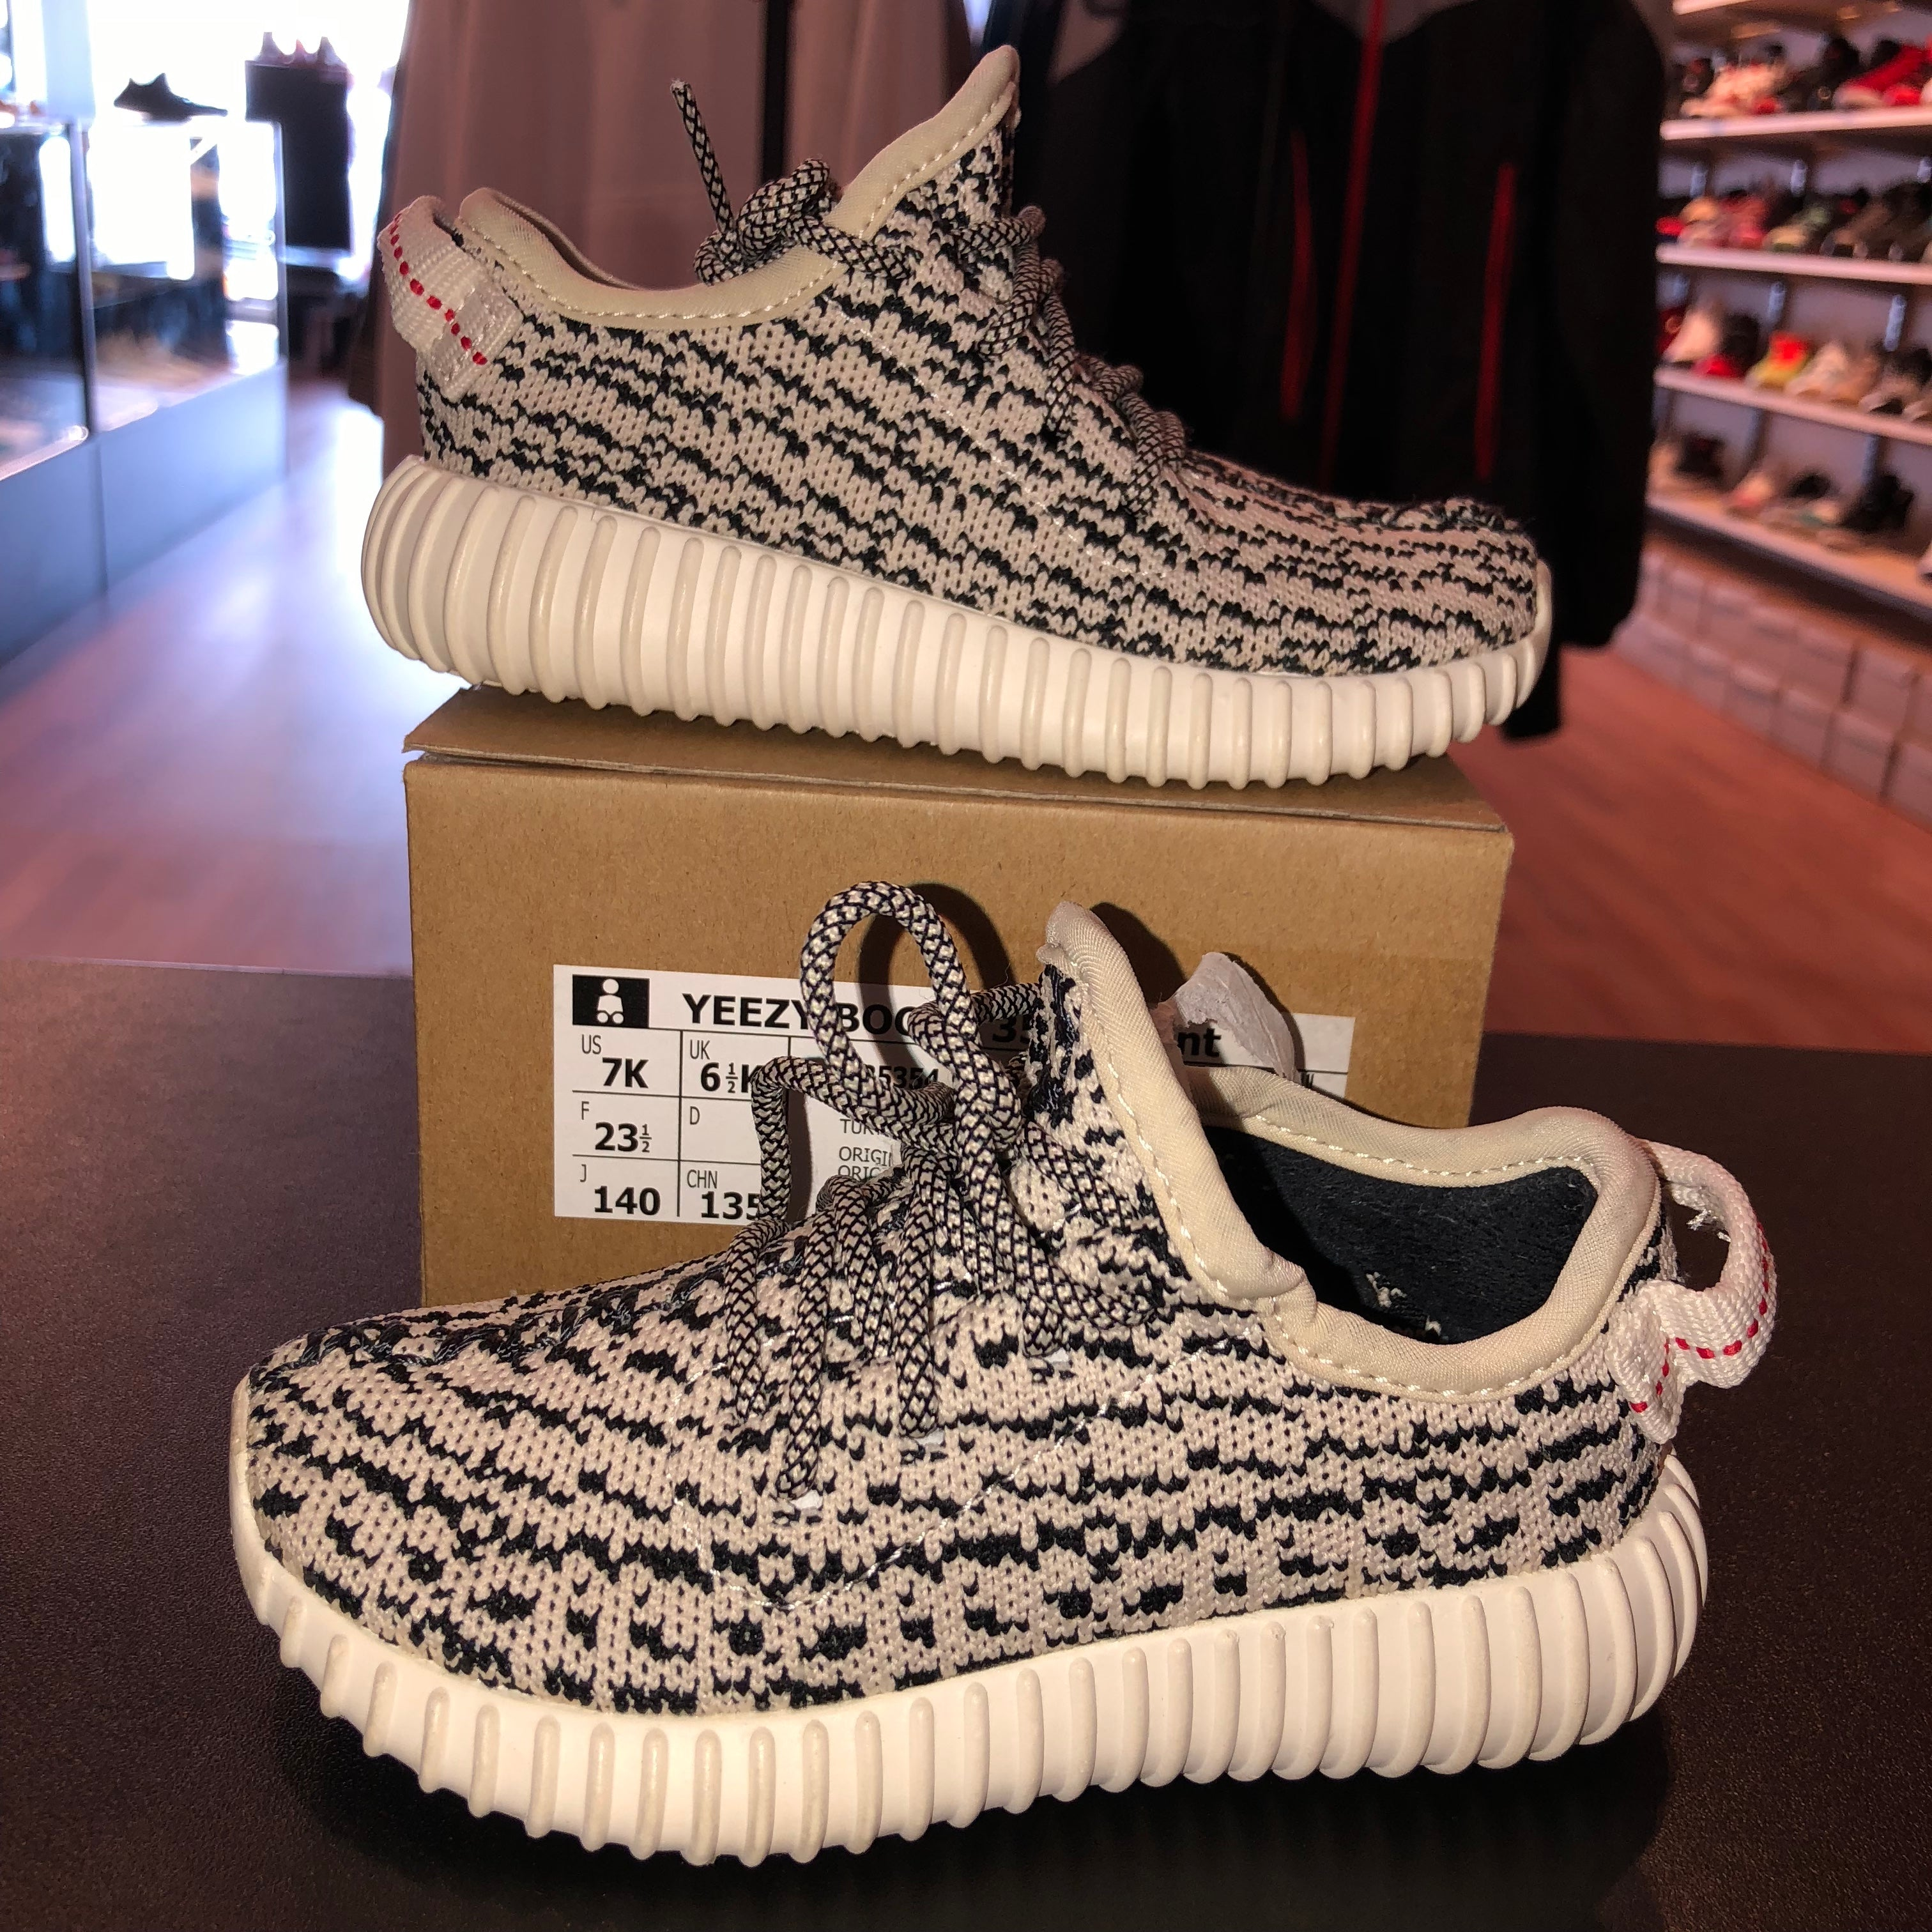 size 7k adidas yeezy boost 350 infant turtle dove direct kicks